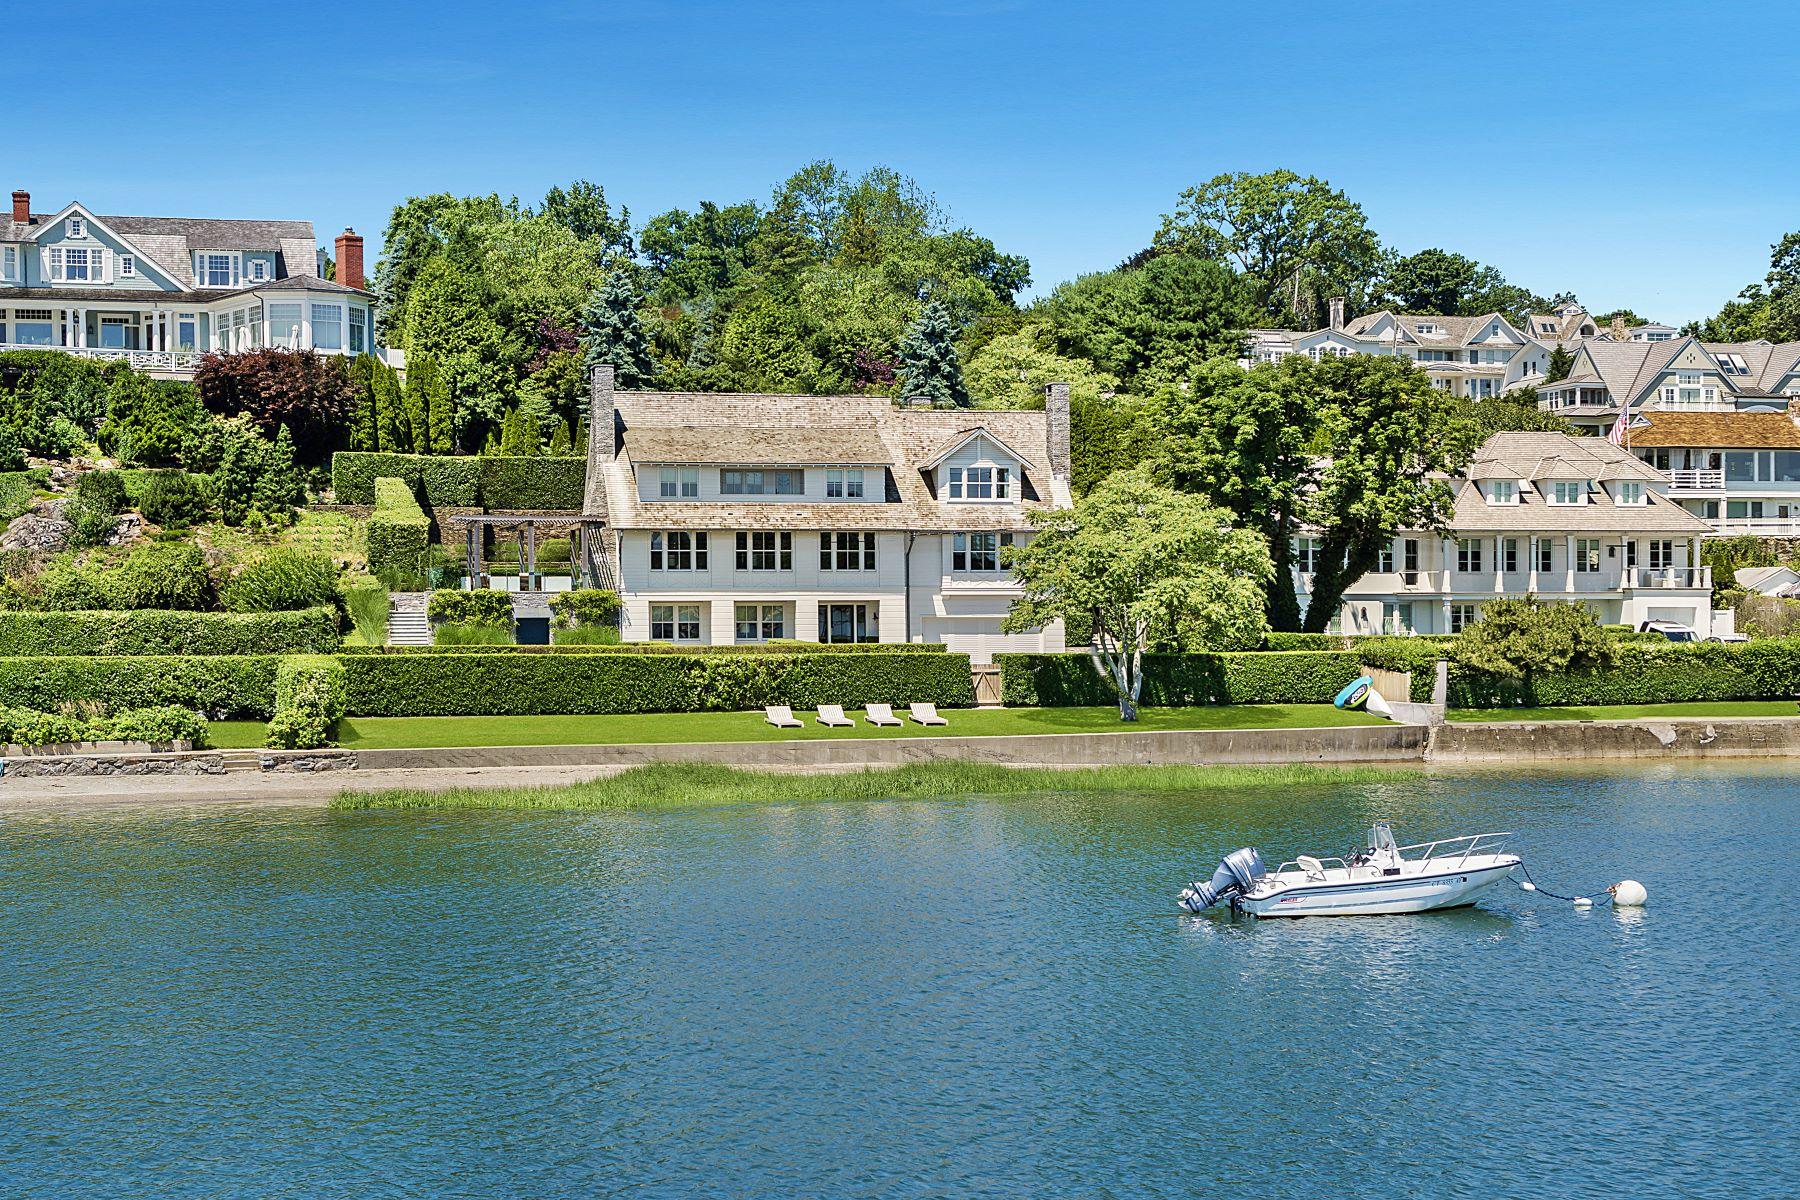 Single Family Homes for Sale at Extraordinary, One-of-a Kind Property Situated on Compo Beach 250 Hillspoint Road Westport, Connecticut 06880 United States